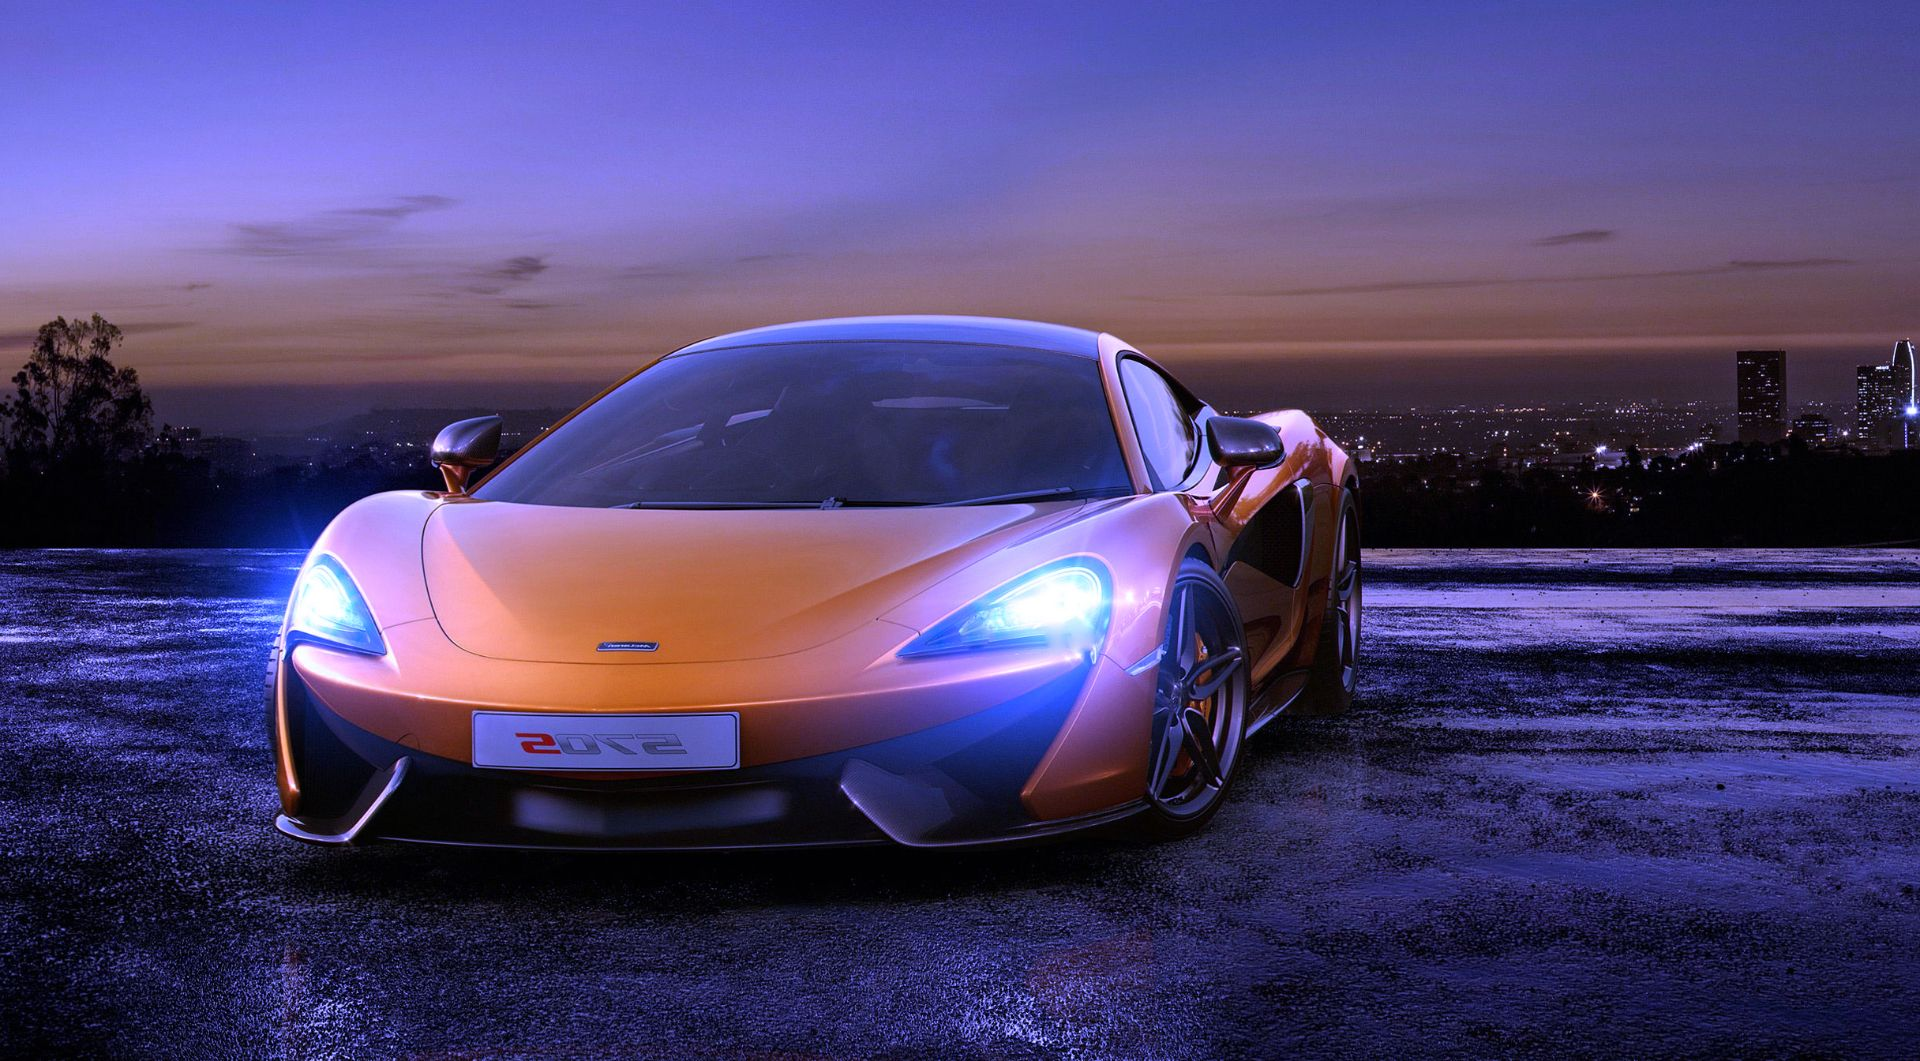 Download Cars Hd Wallpapers Download Hd Widescreen Wallpaper Or High Definition Widescreen Wallpapers From The Bel Car Hd Hd Wallpaper Hd Widescreen Wallpapers